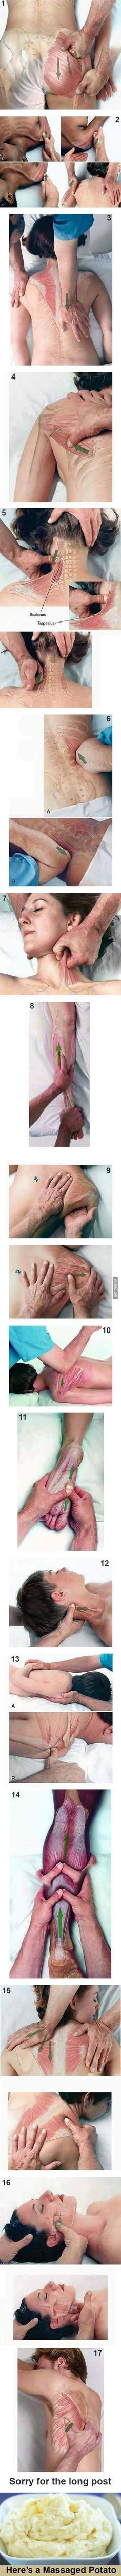 How to give a great massage